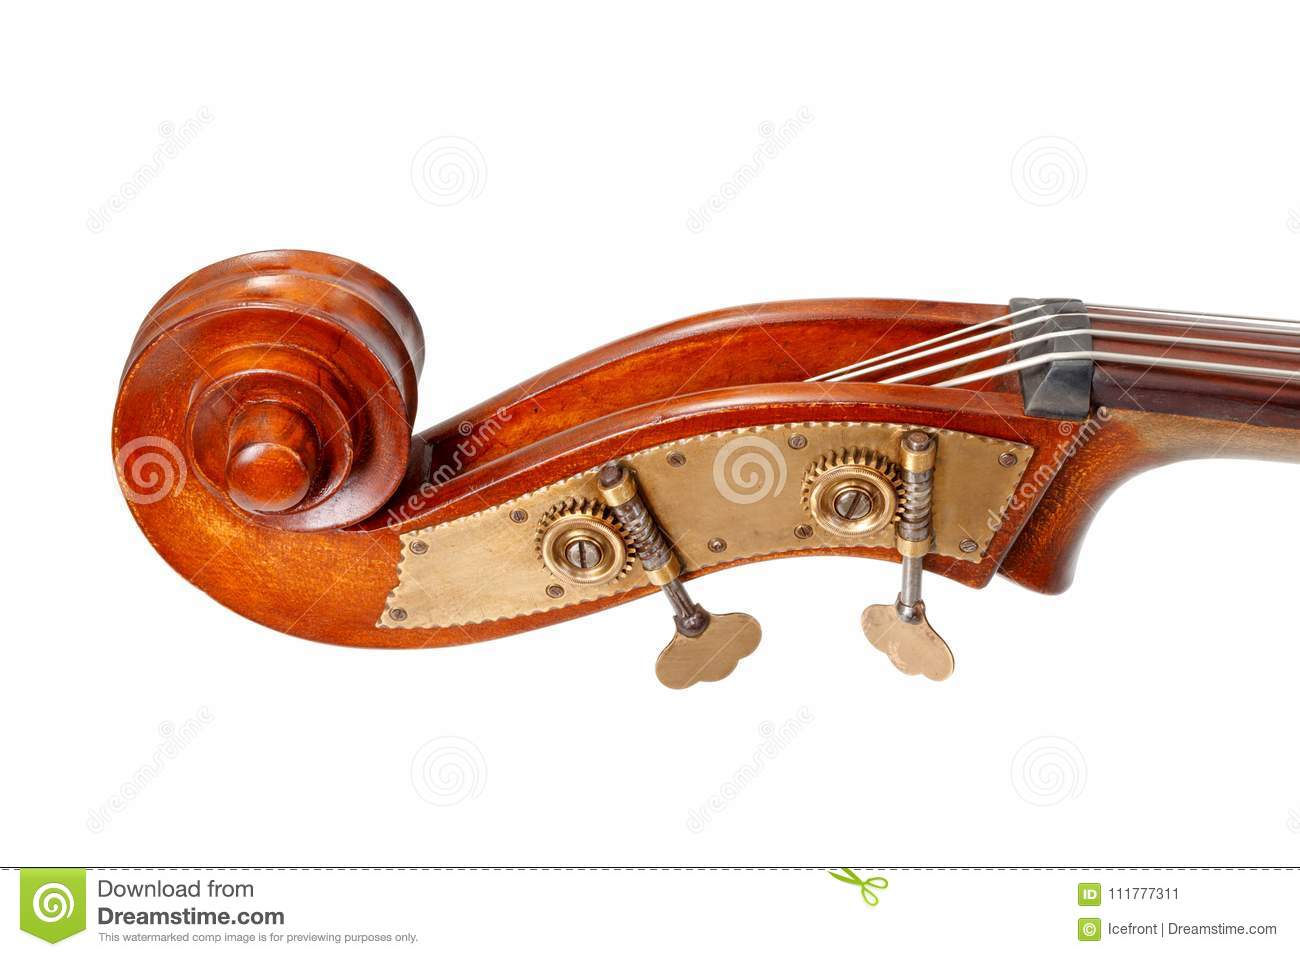 Pegbox, scroll and tuning keys of a contrabass